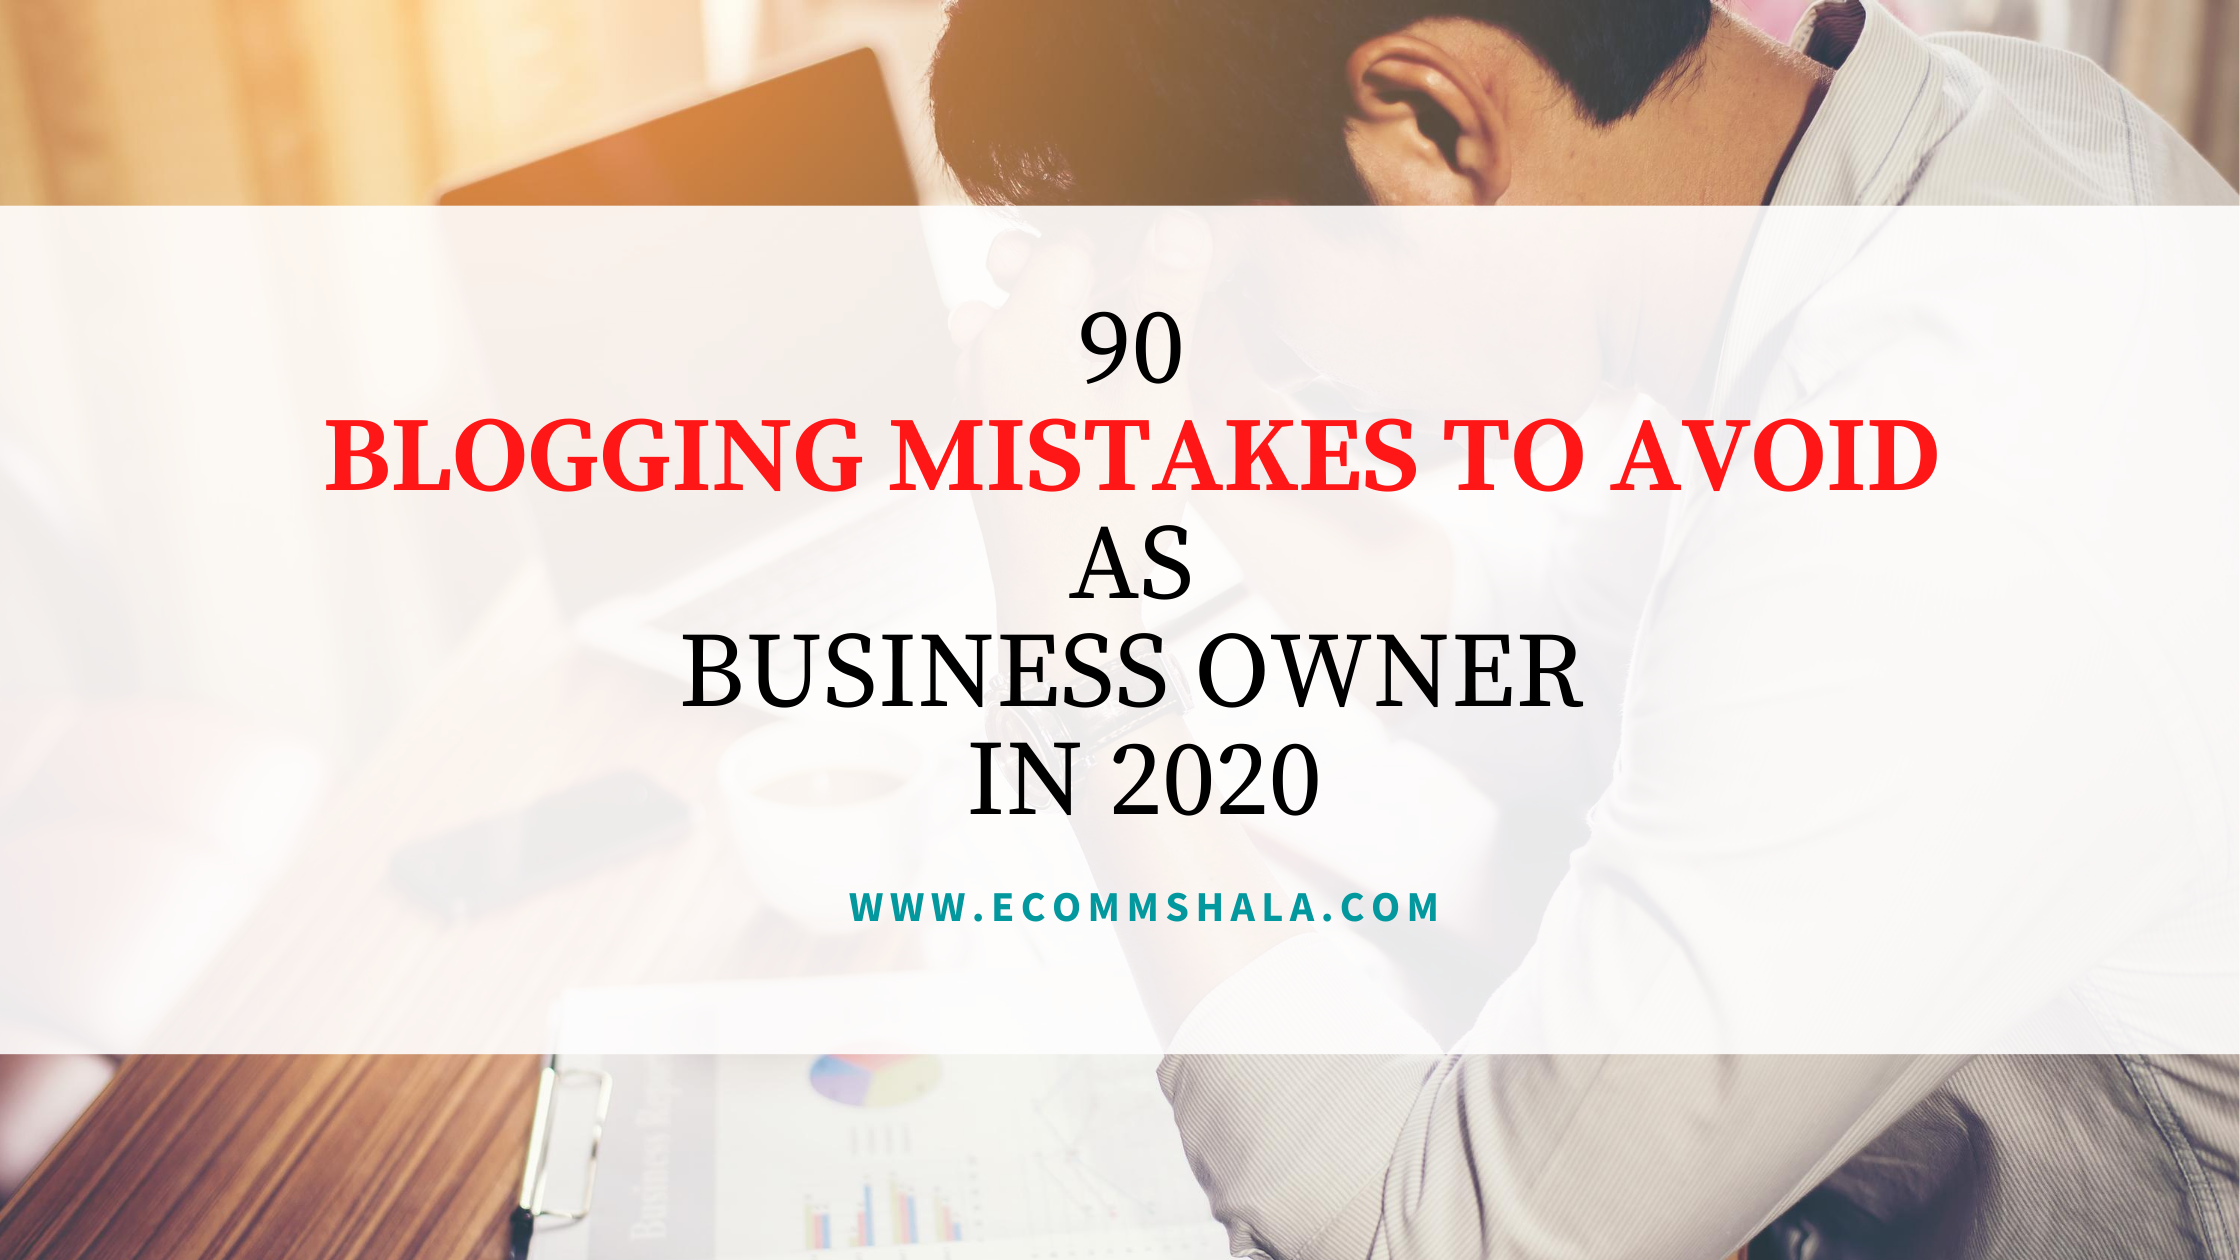 90 Blogging Mistakes to Avoid as Business Owner in 2020